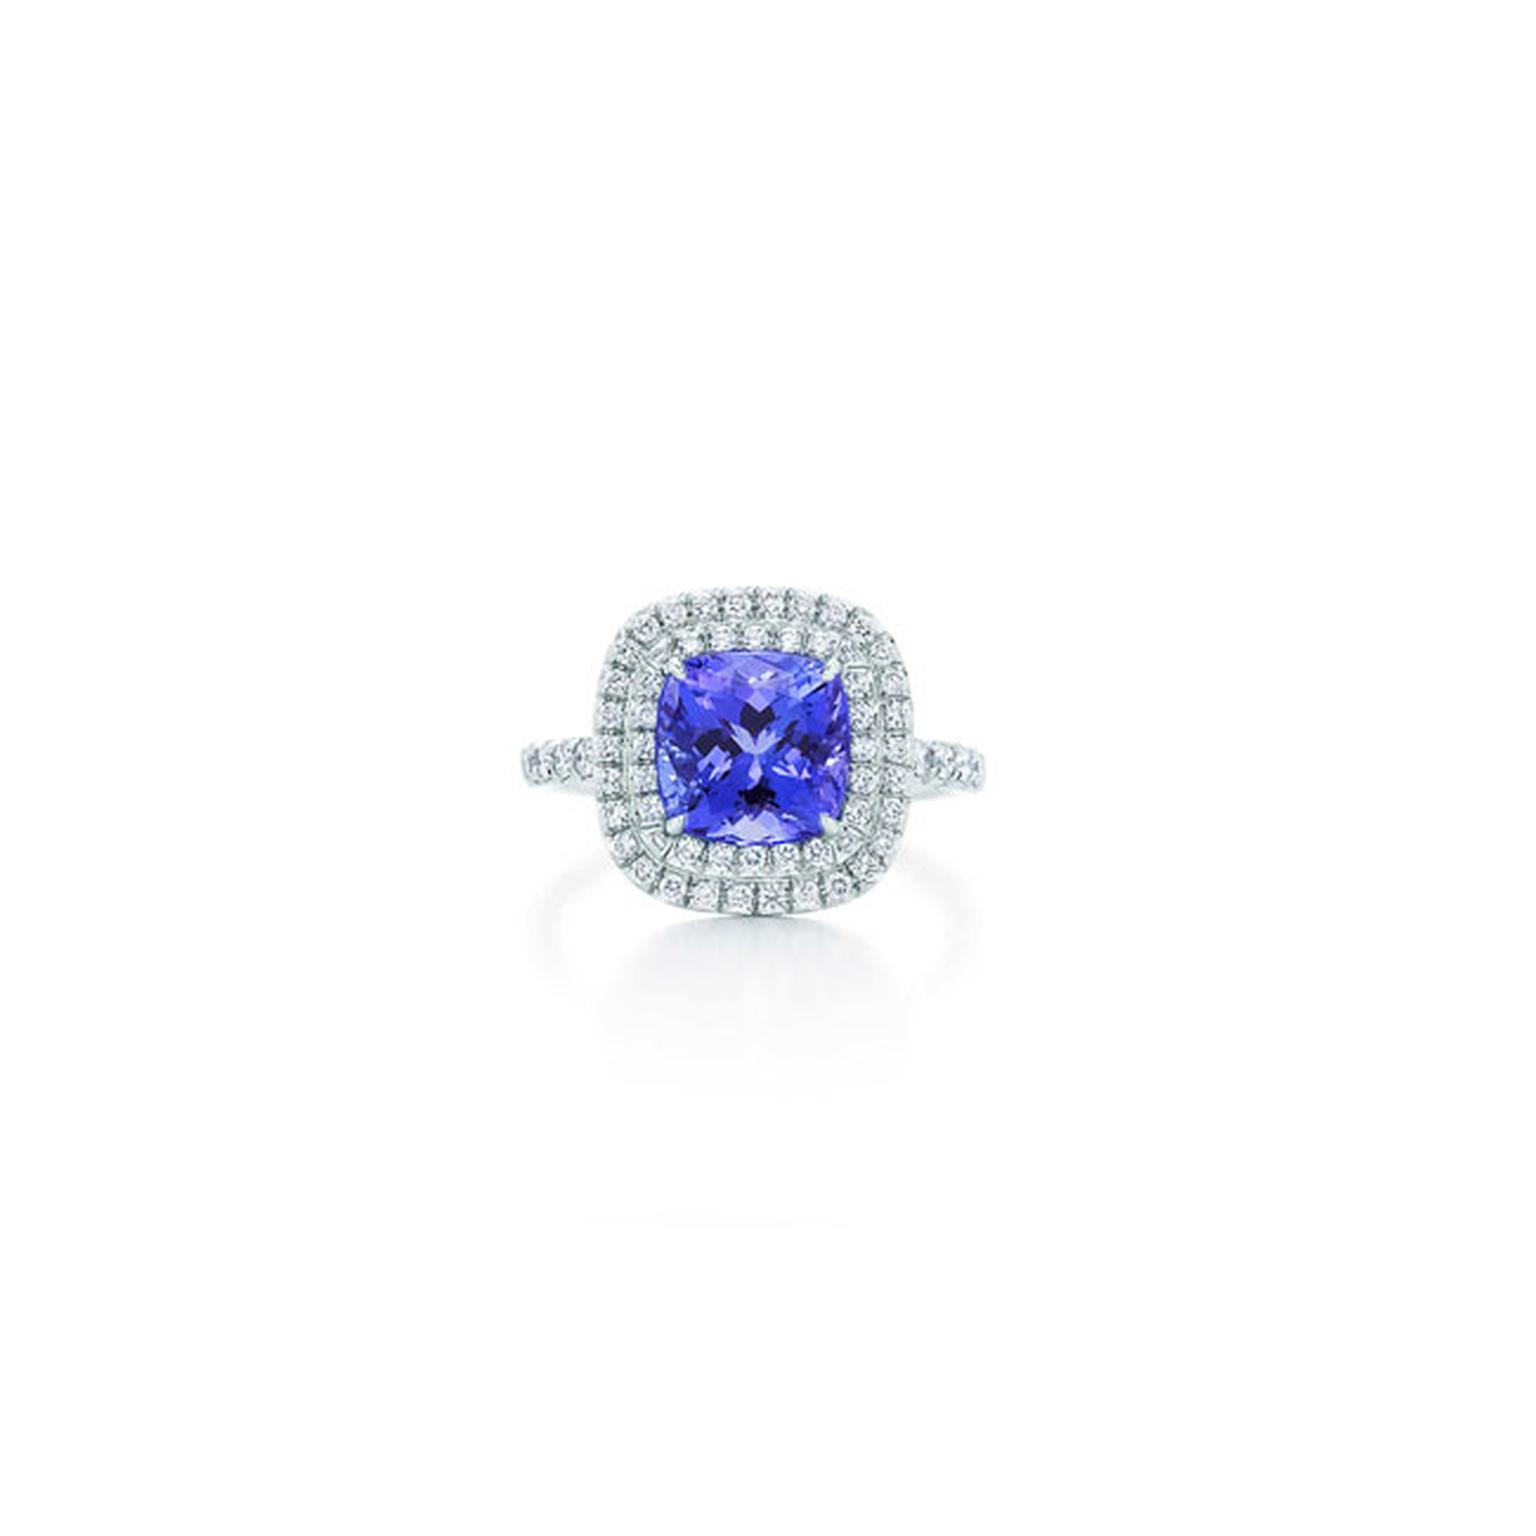 Tiffany Soleste tanzanite and diamond ring_main